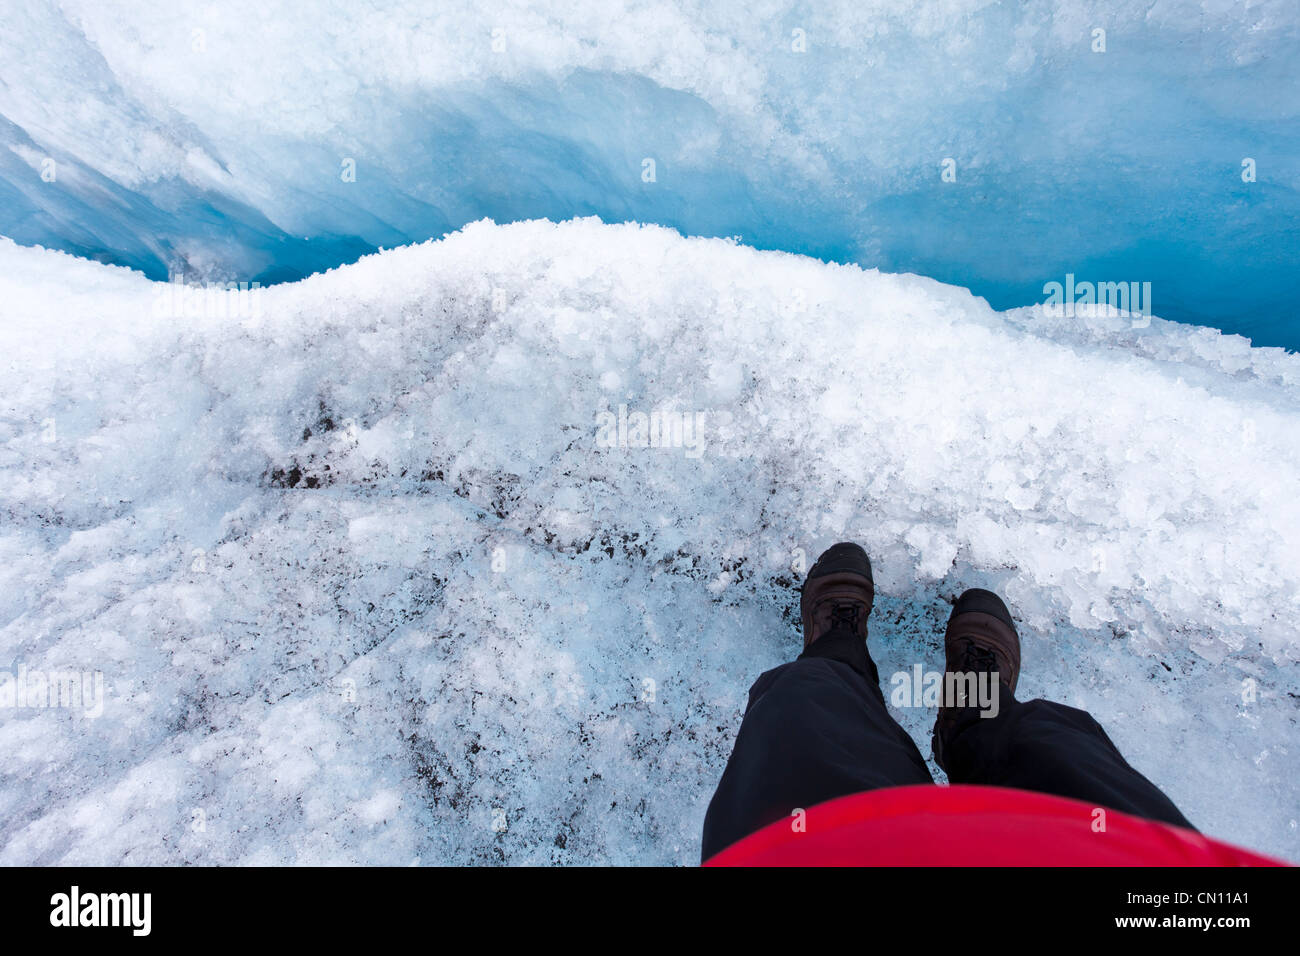 Standing on edge of a crevasse in Greenland - MR - Stock Image